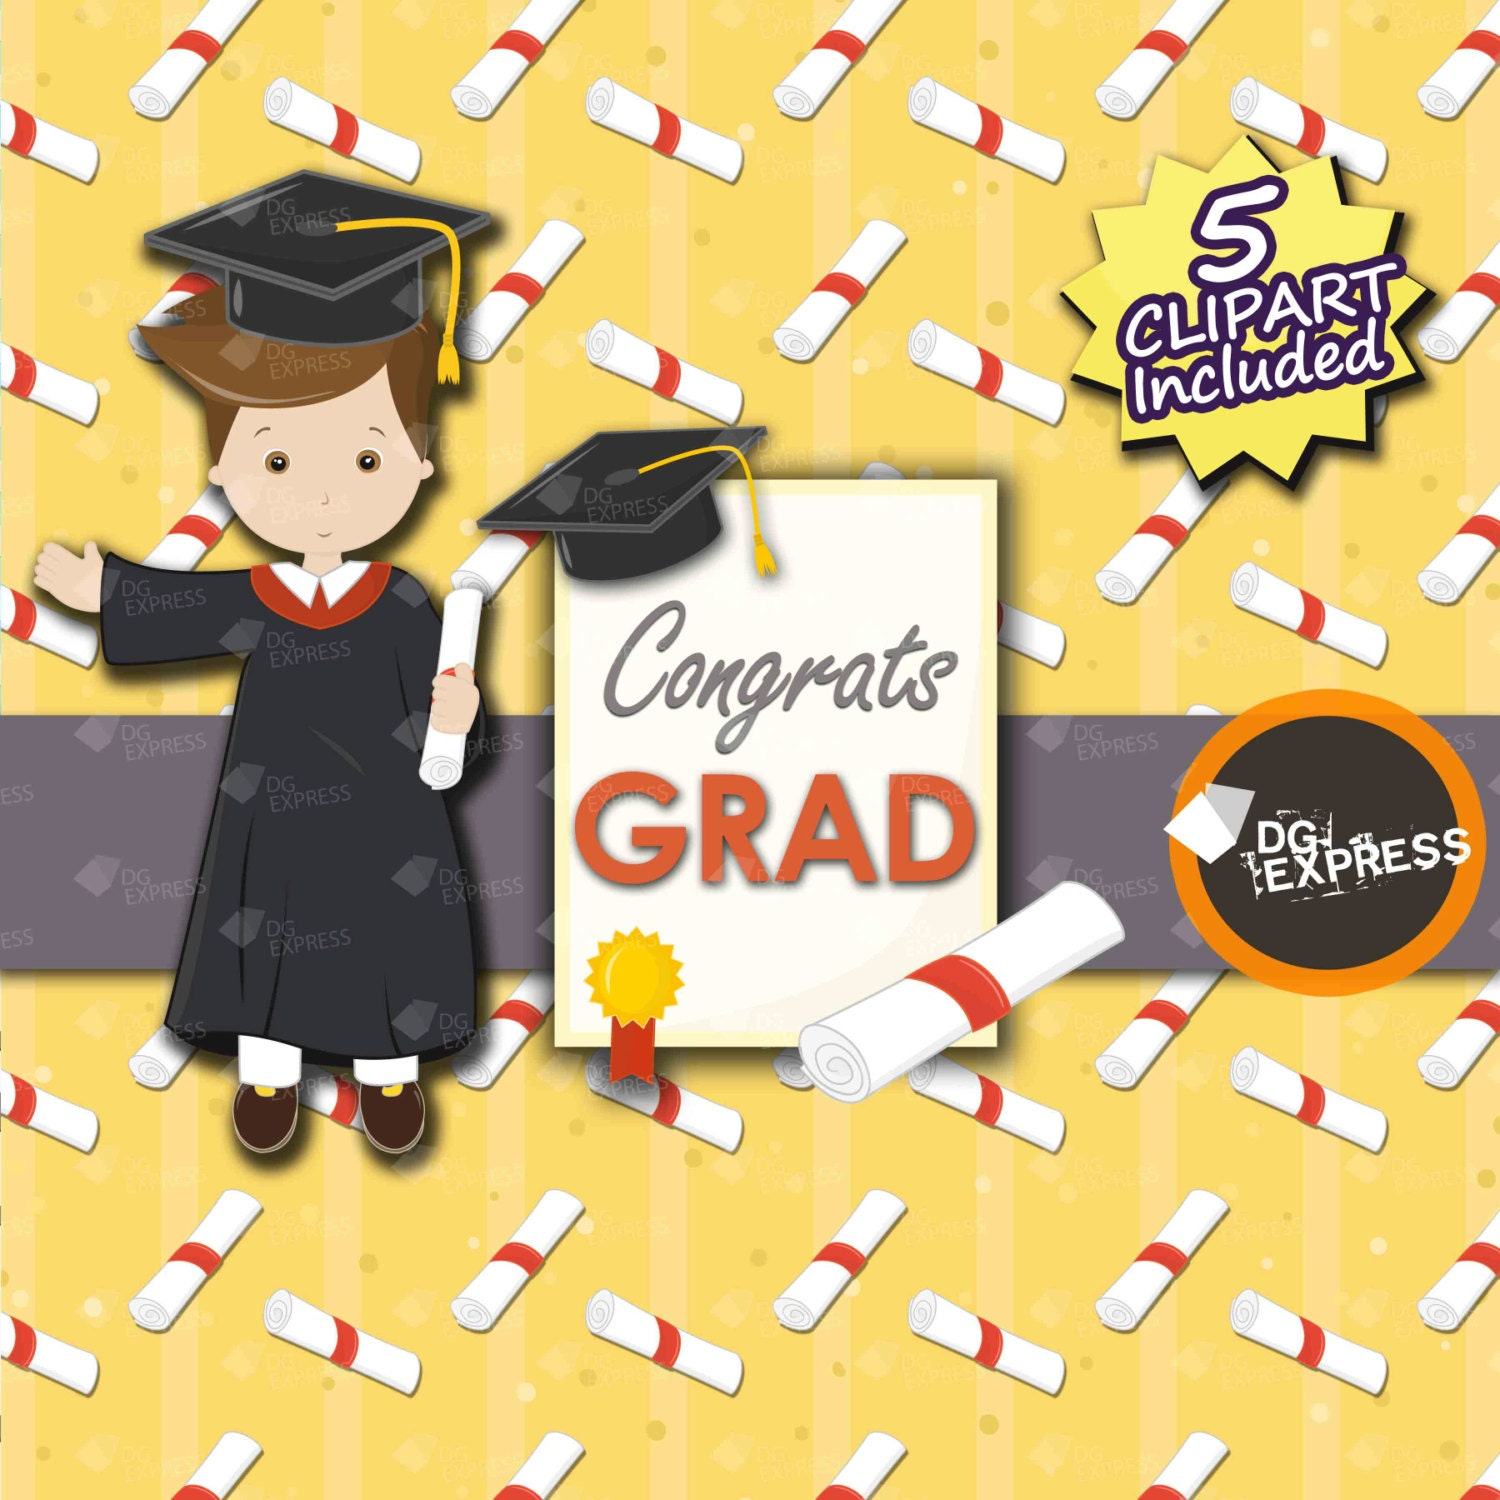 my graduation papper 75 graduation party ideas your grad will love create delicious oreo cheesecake push pops and top them with little graduation caps photo credit: my paper crush.